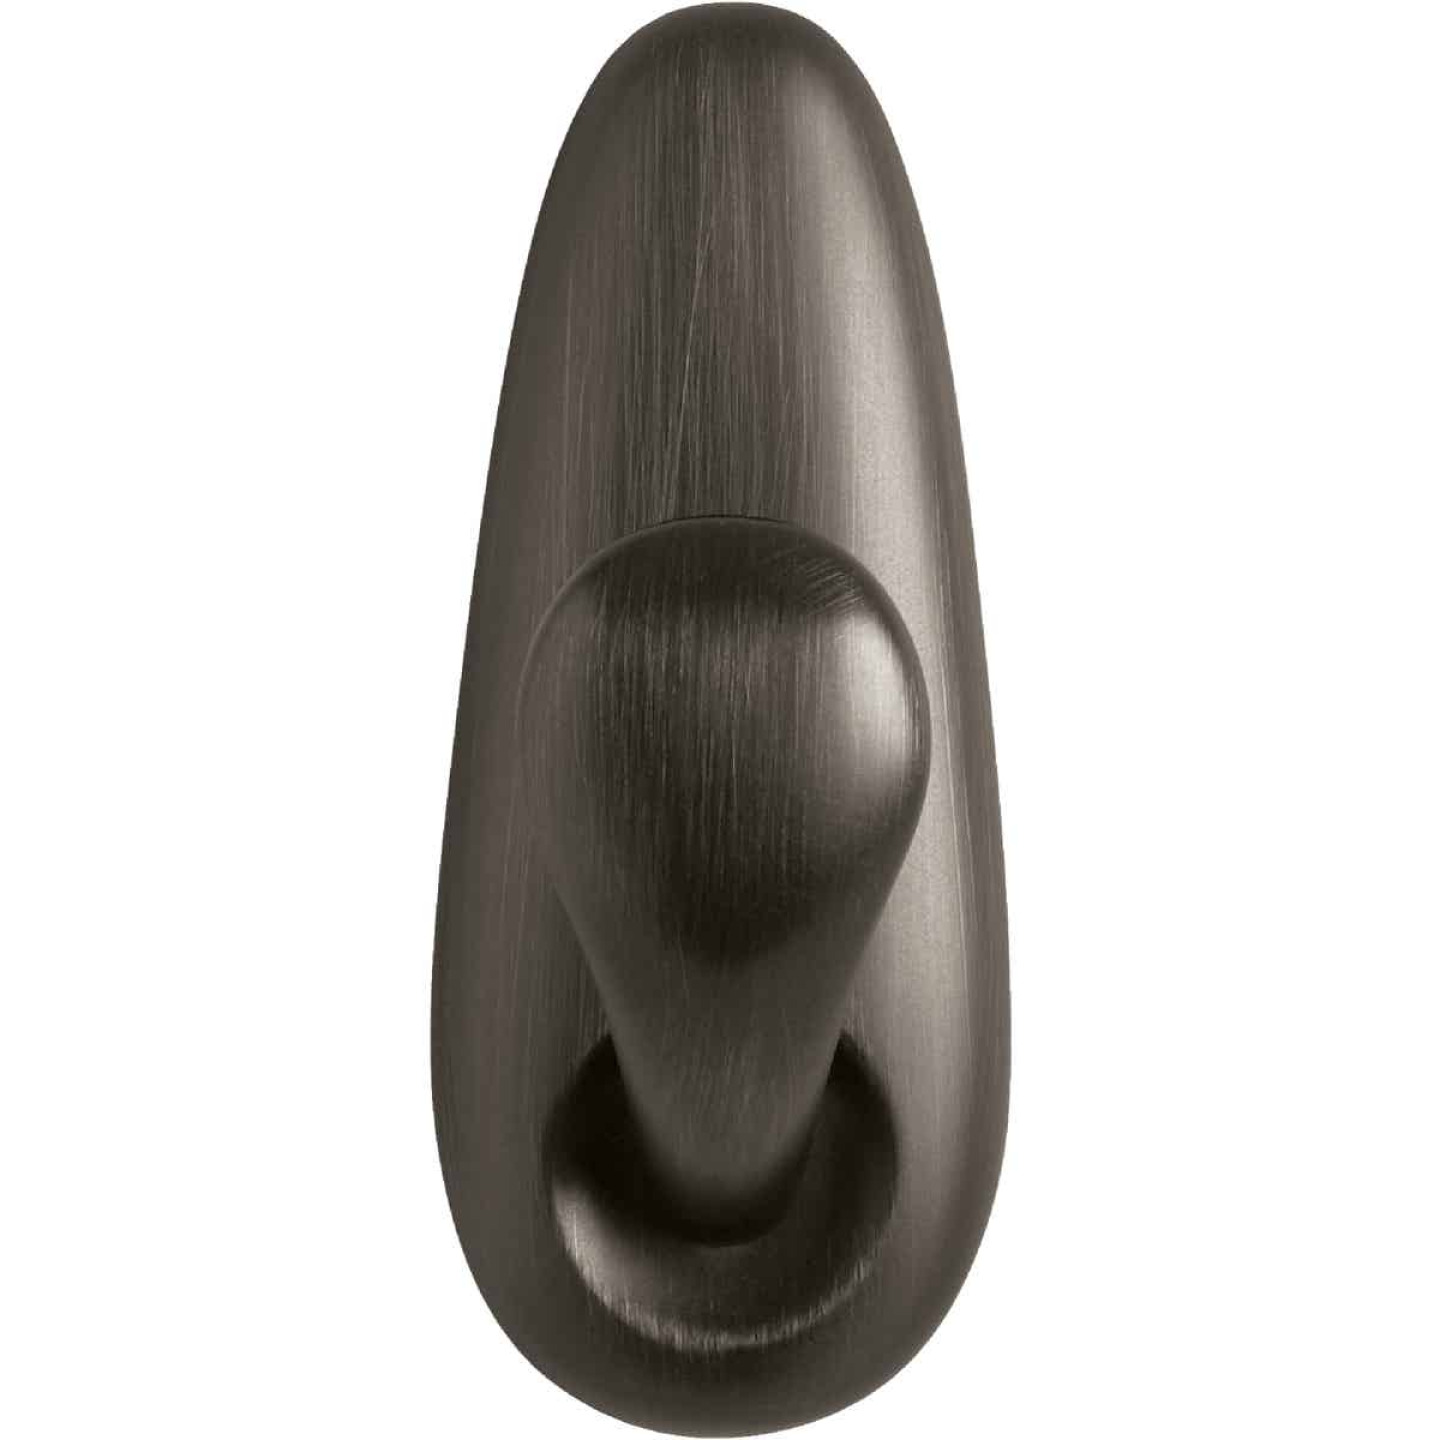 3M Command Large Oil Rubbed Bronze Metal Adhesive Hook Image 3